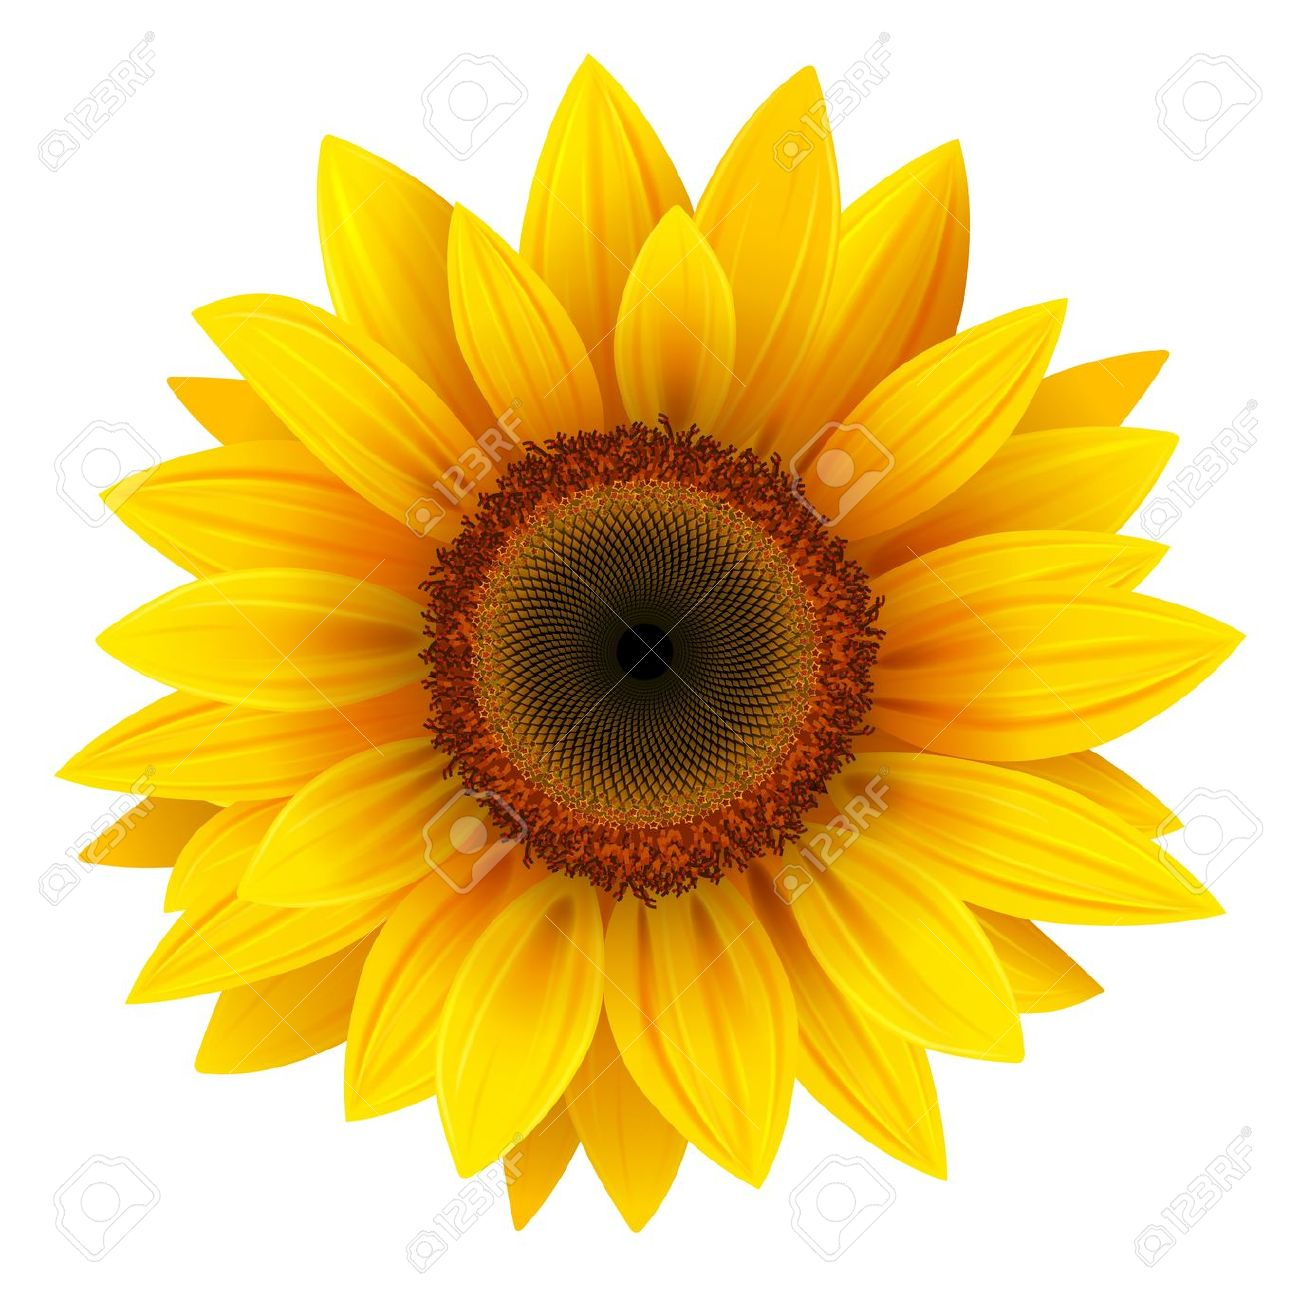 Girasole clipart 20 free Cliparts | Download images on ...